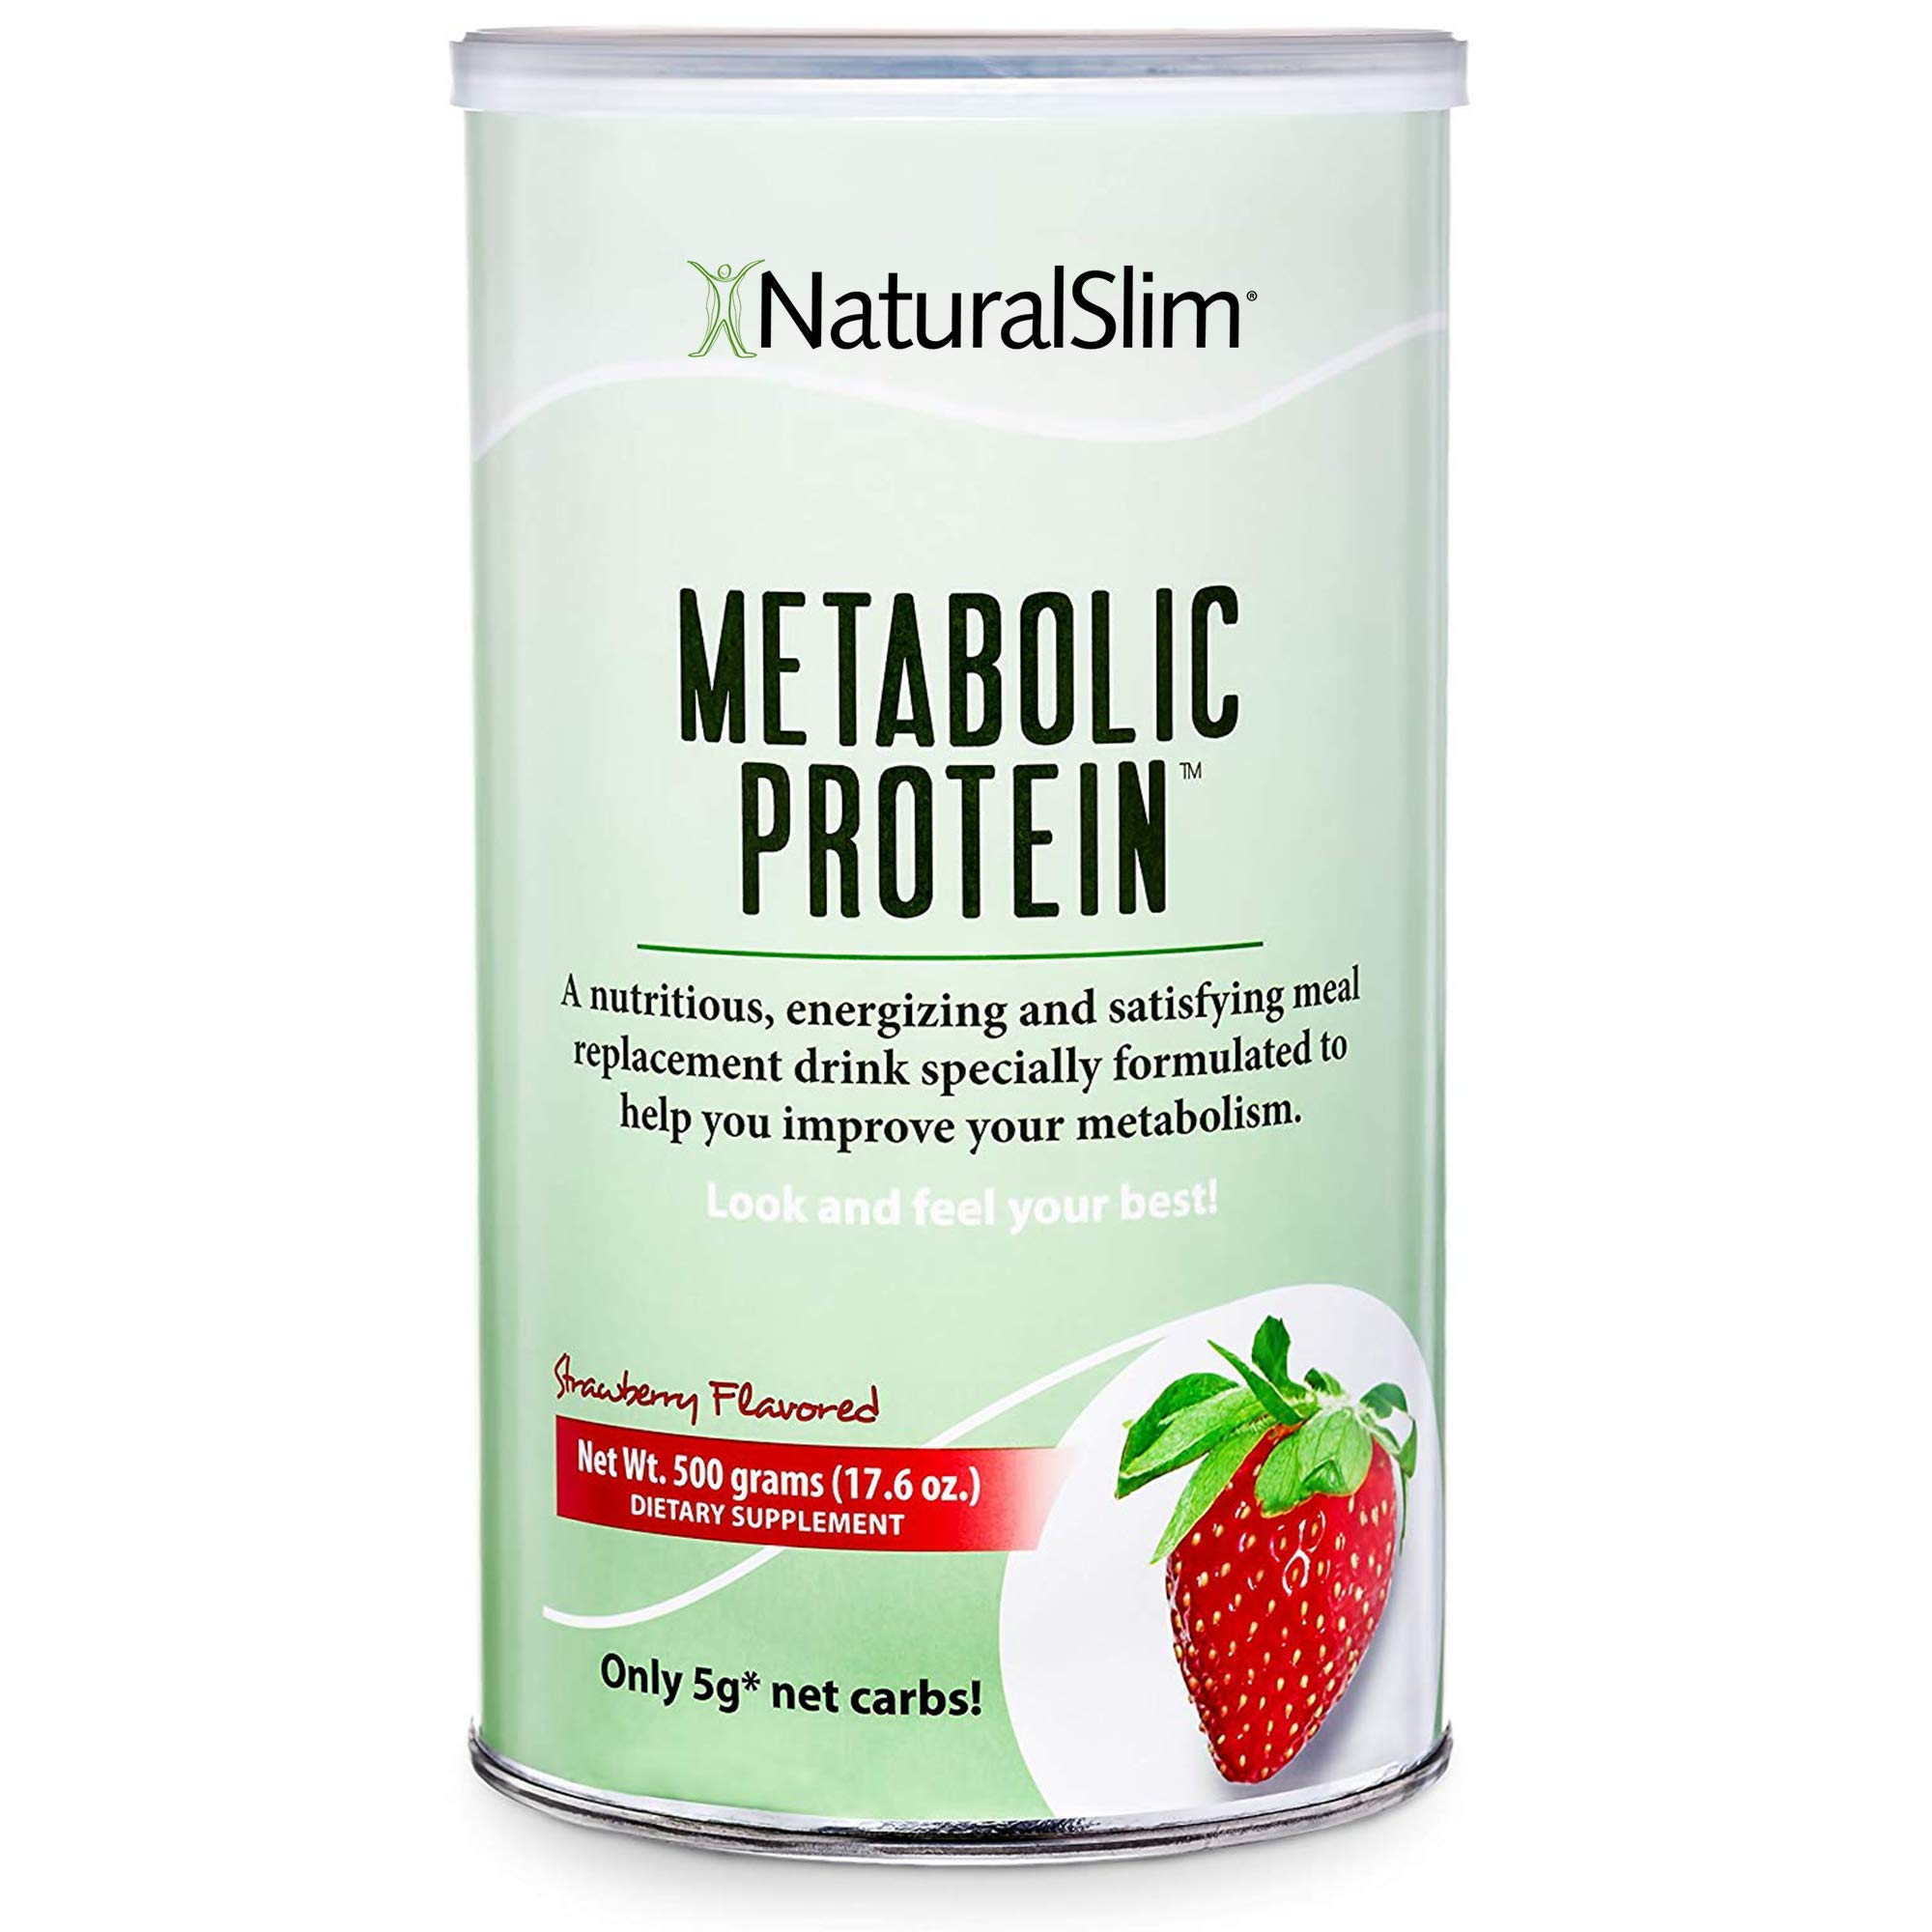 NaturalSlim Meal Replacement Whey Protein Shakes, Natural Aid for a ''Slow Metabolism'' with Ingredients to Suppress Appetite and Start of Your Day Burning Fat- Great Taste and Very Filling (Strawberry) by RelaxSlim